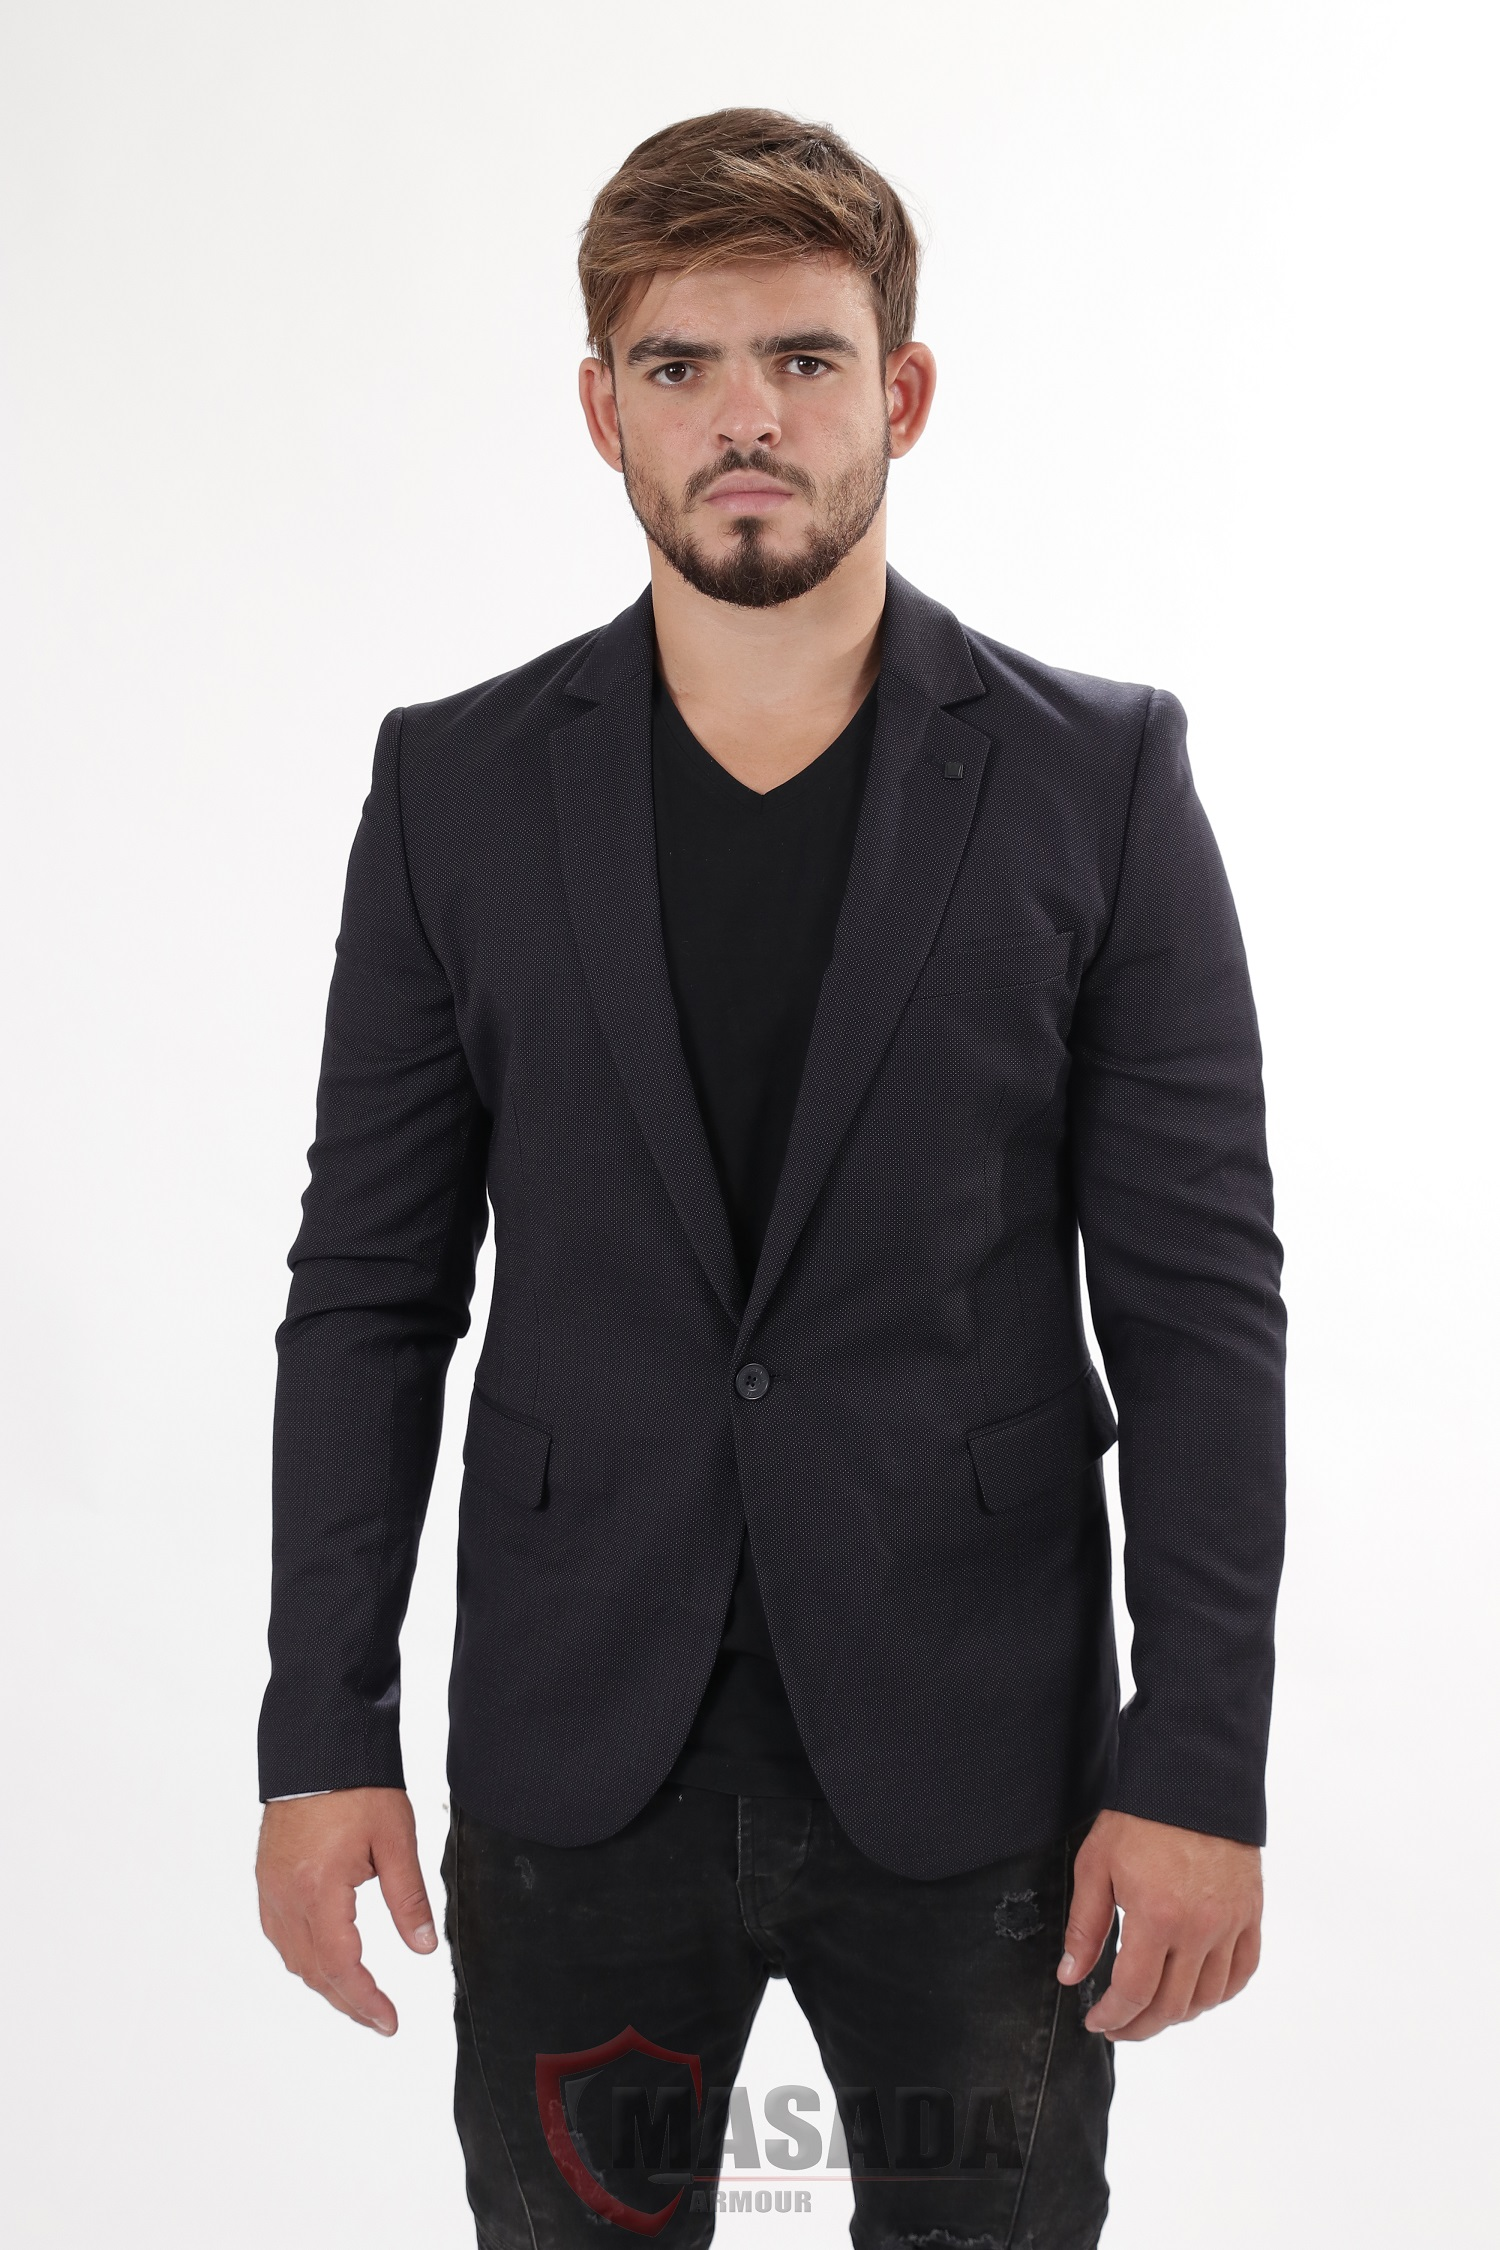 Bulletproof VIP suit jacket